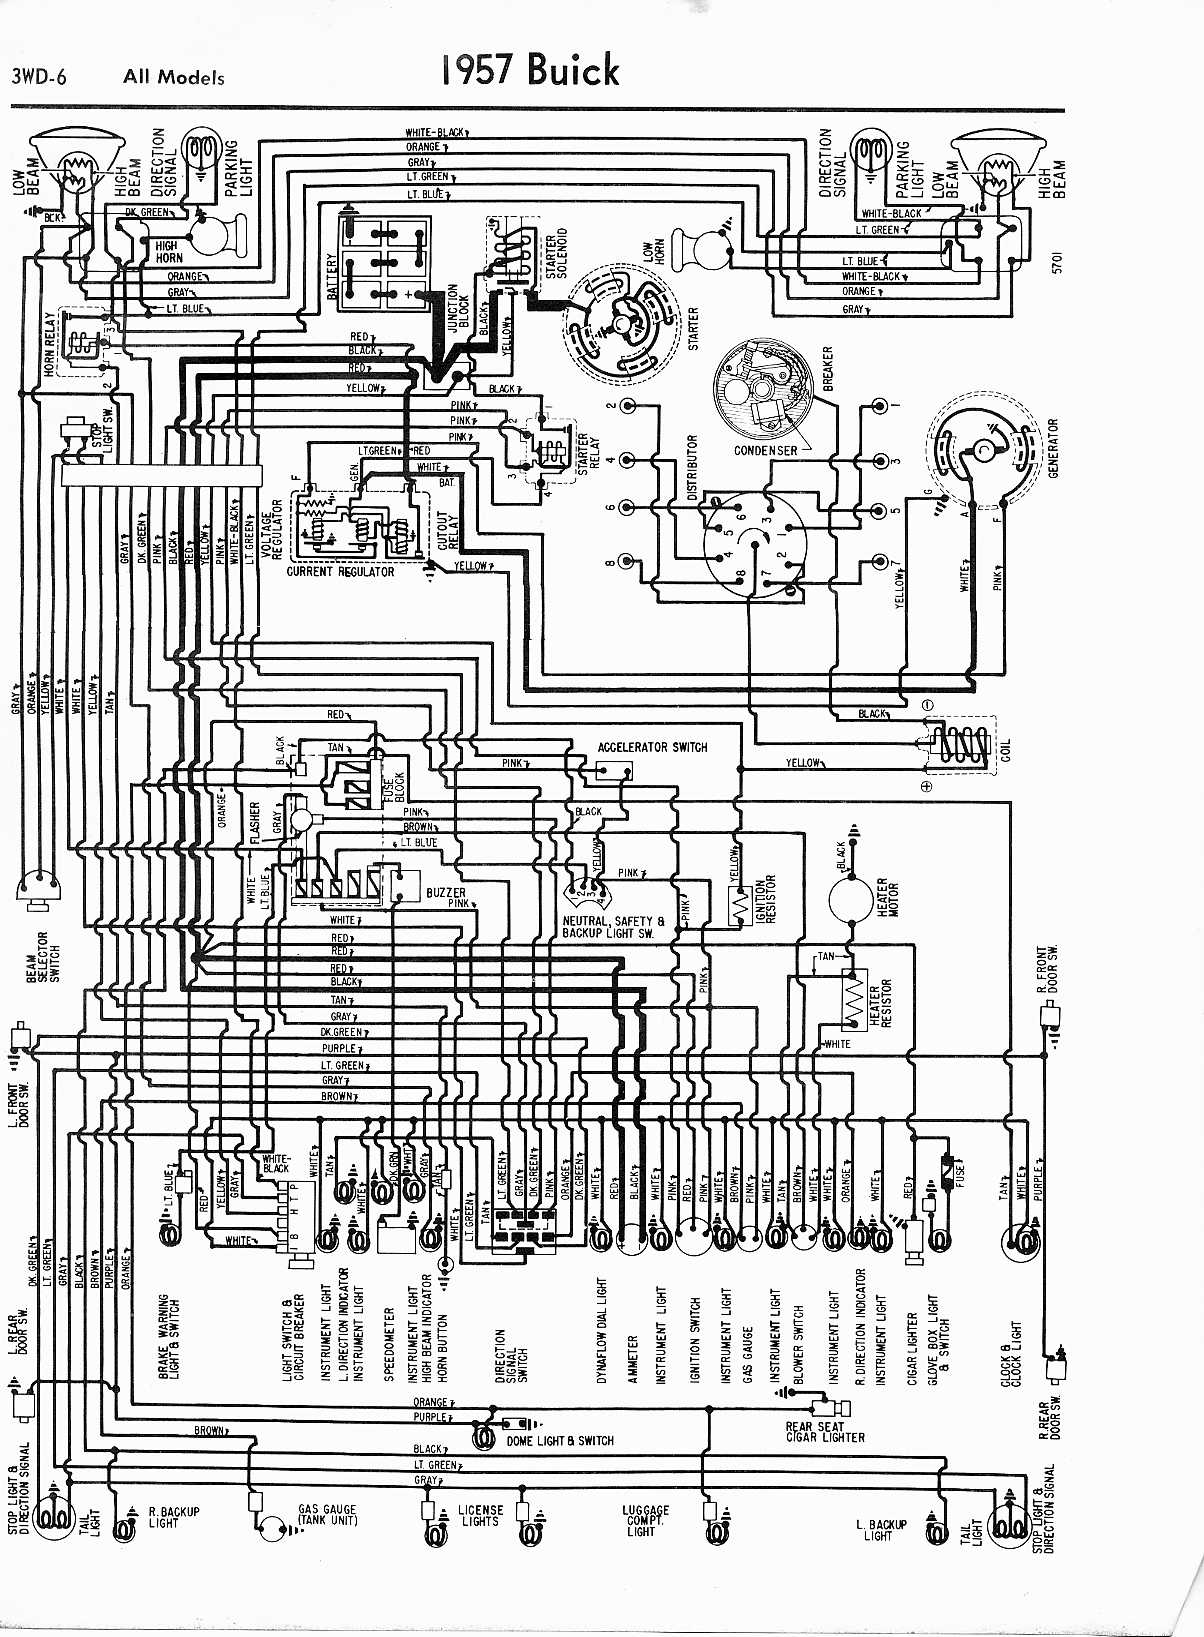 MWireBuic65_3WD 006 buick wiring diagrams 1957 1965 1960 vw bus wiring diagram at fashall.co